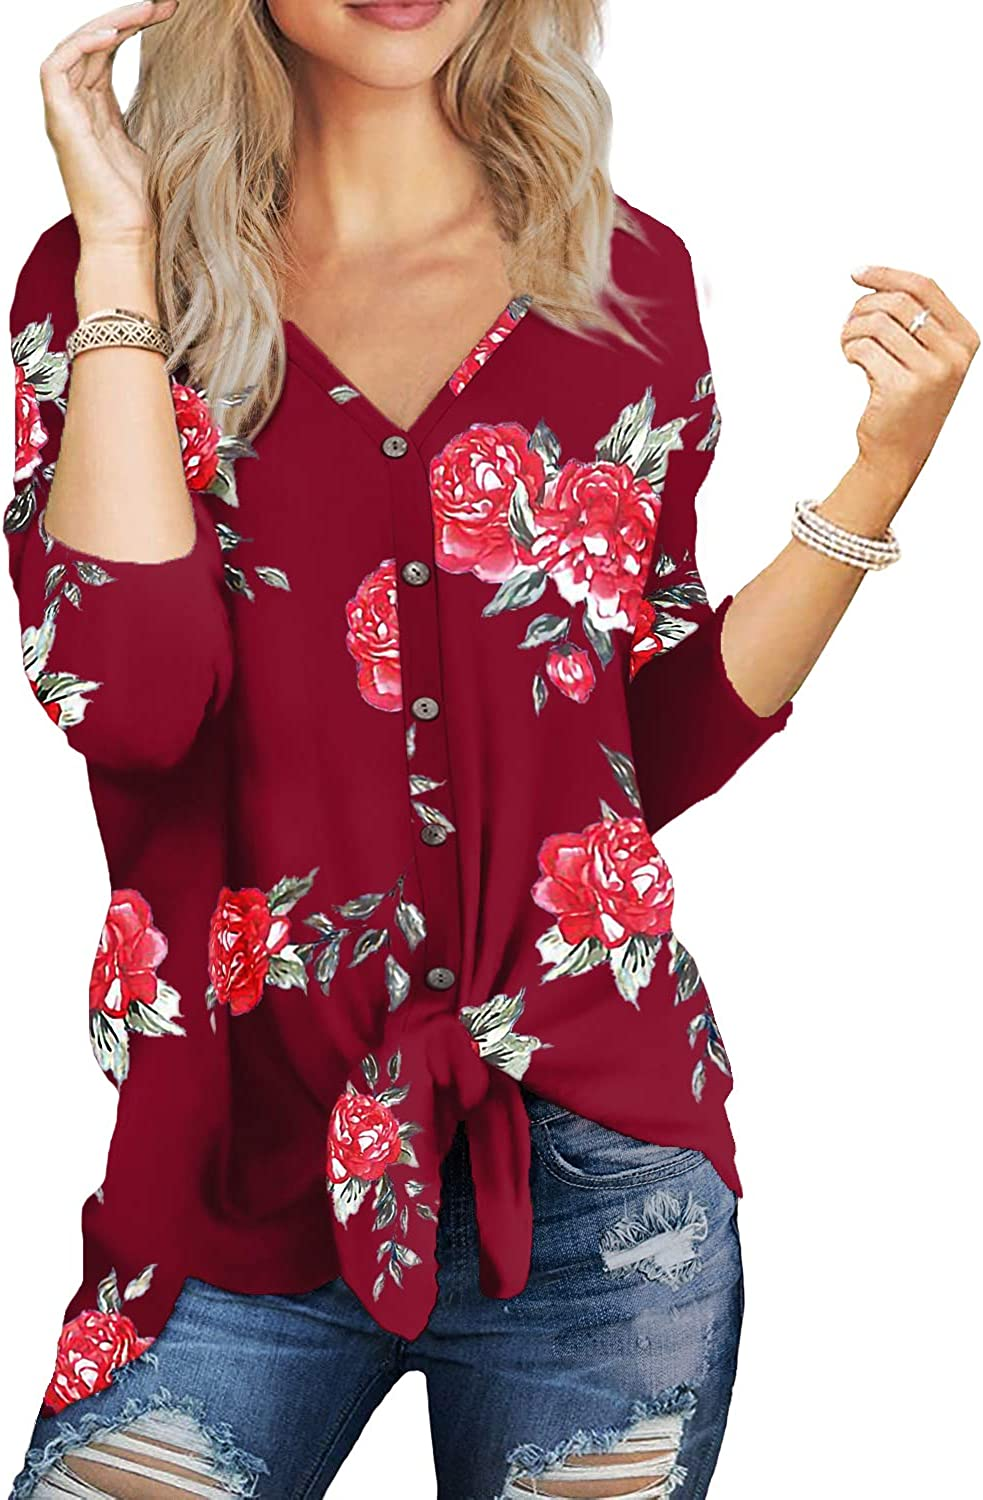 Florboom Womens V Neck Button Down T-Shirts Tie Front Knot Tops Blouse